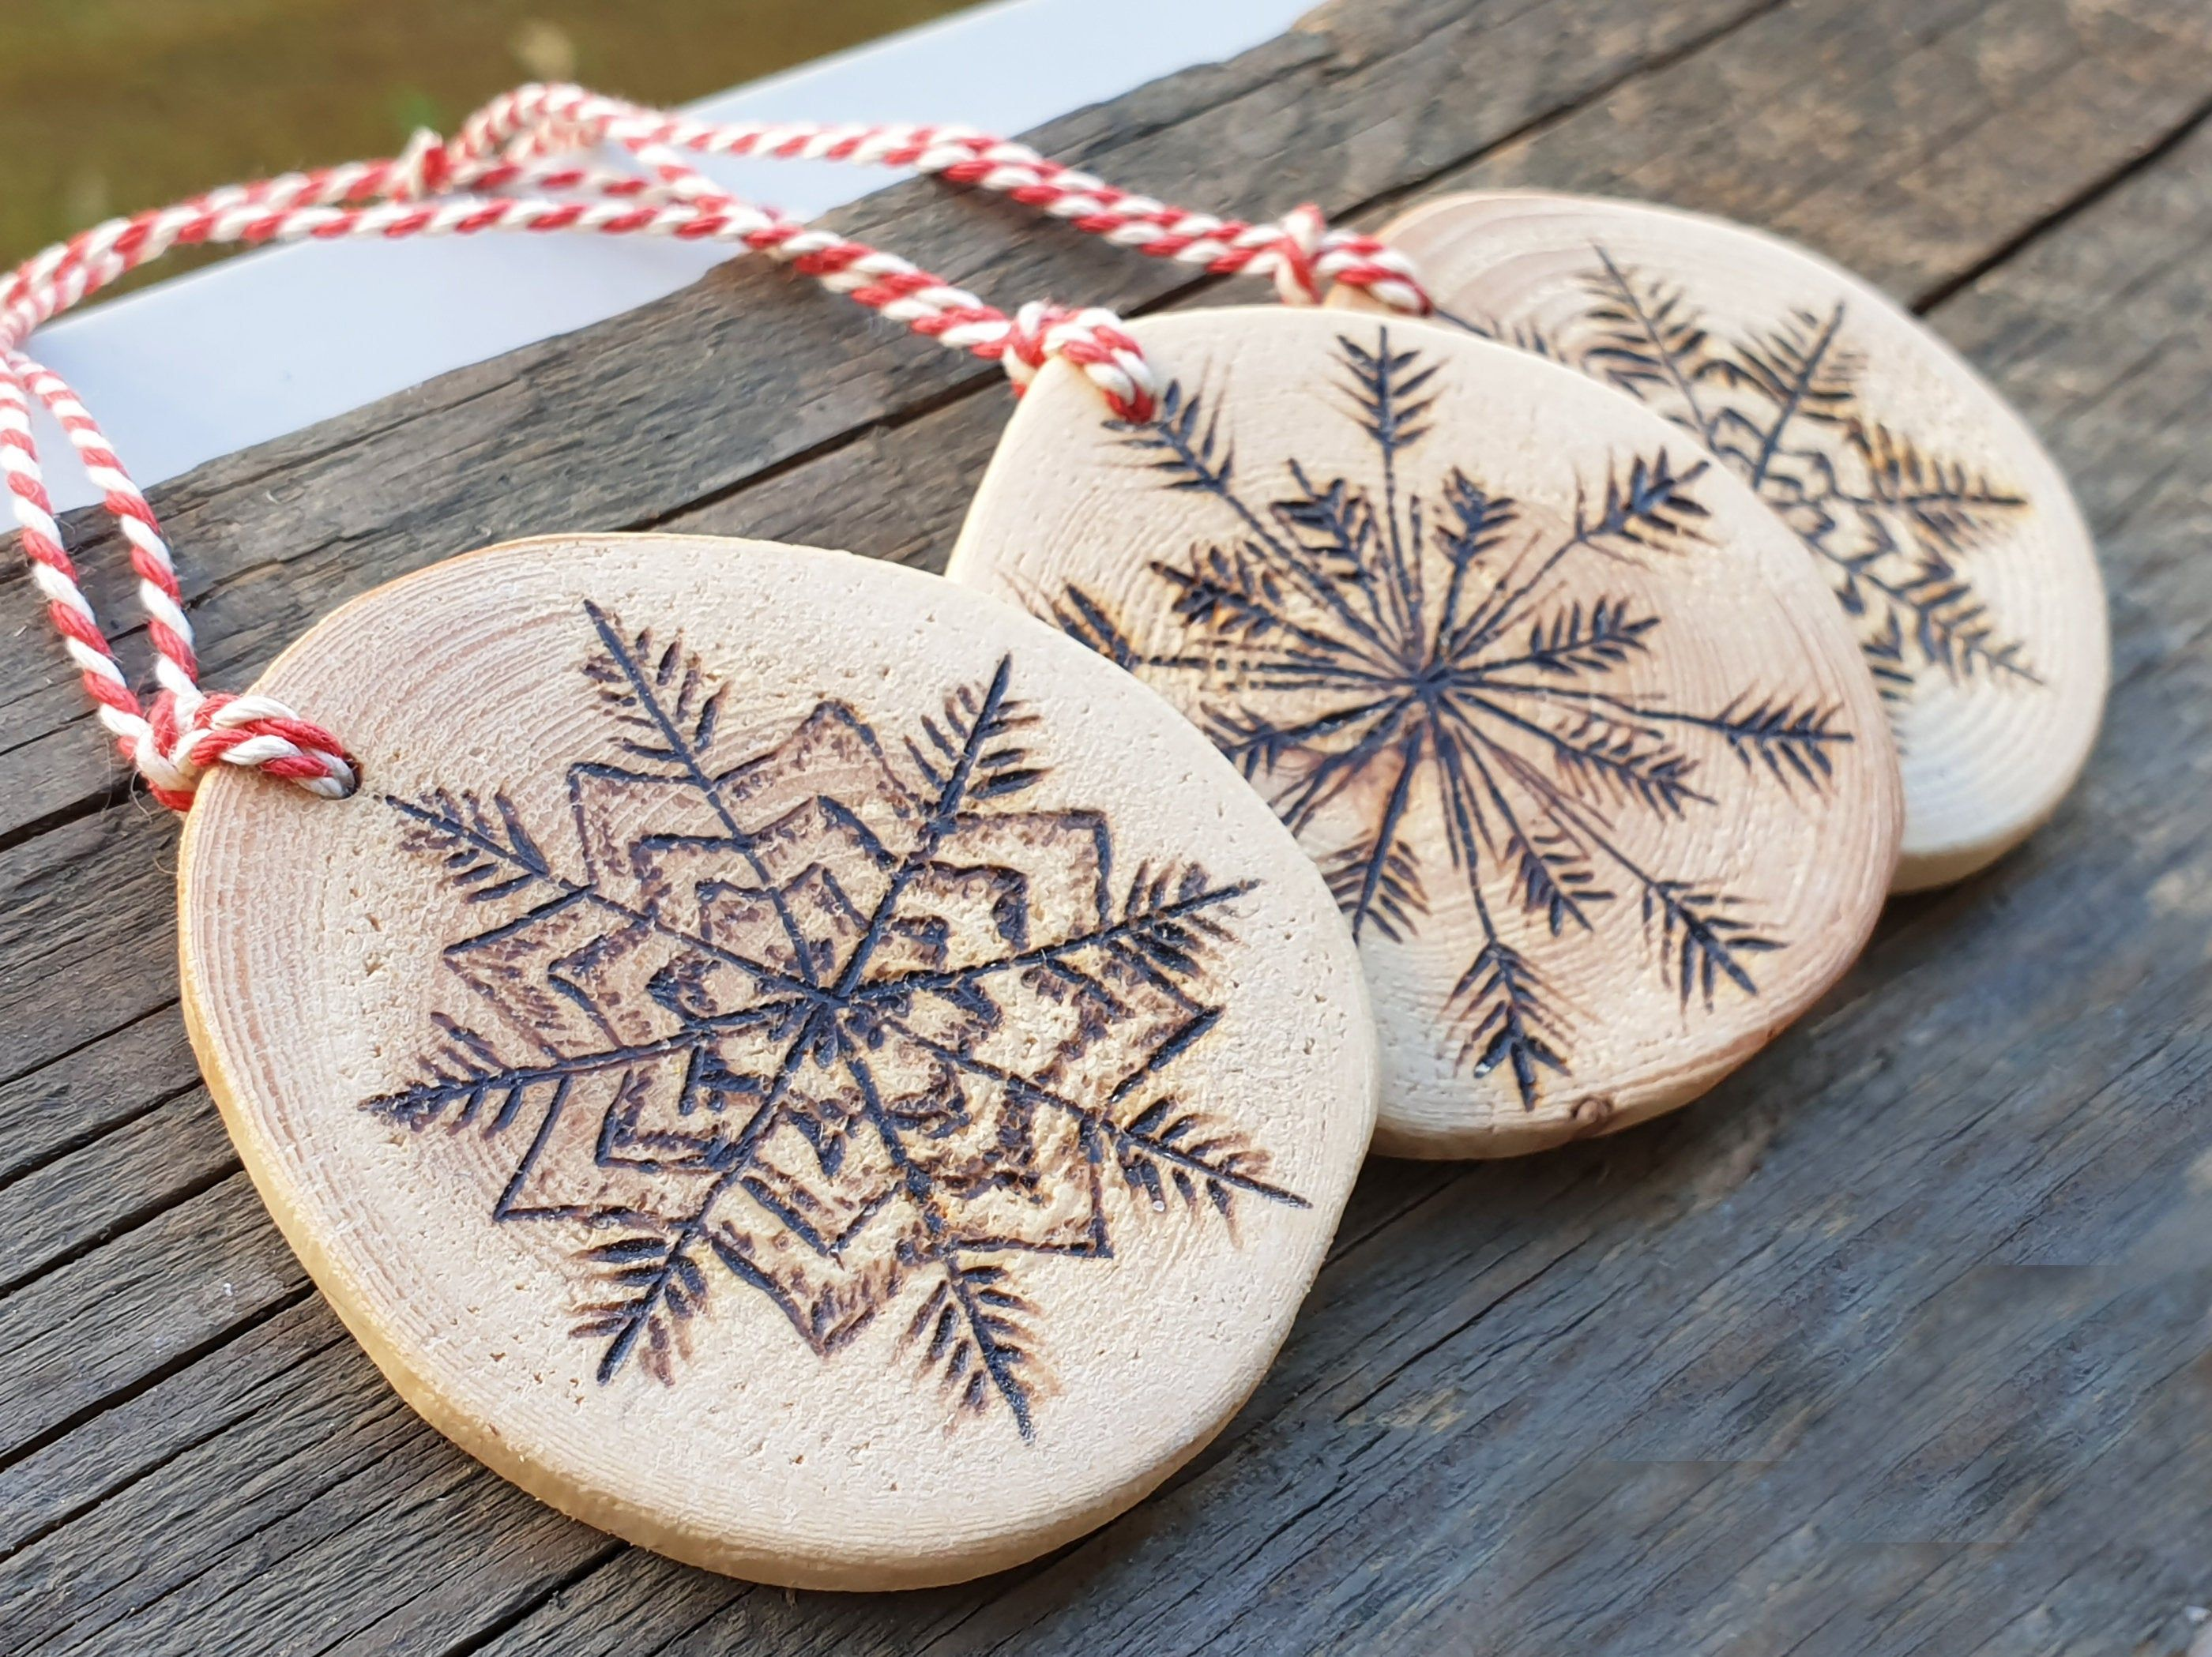 Wood Burned Snowflakes Wooden Ornaments Christmas Tree Rustic Etsy In 2021 Wooden Christmas Ornaments Snowman Christmas Ornaments Wooden Ornaments